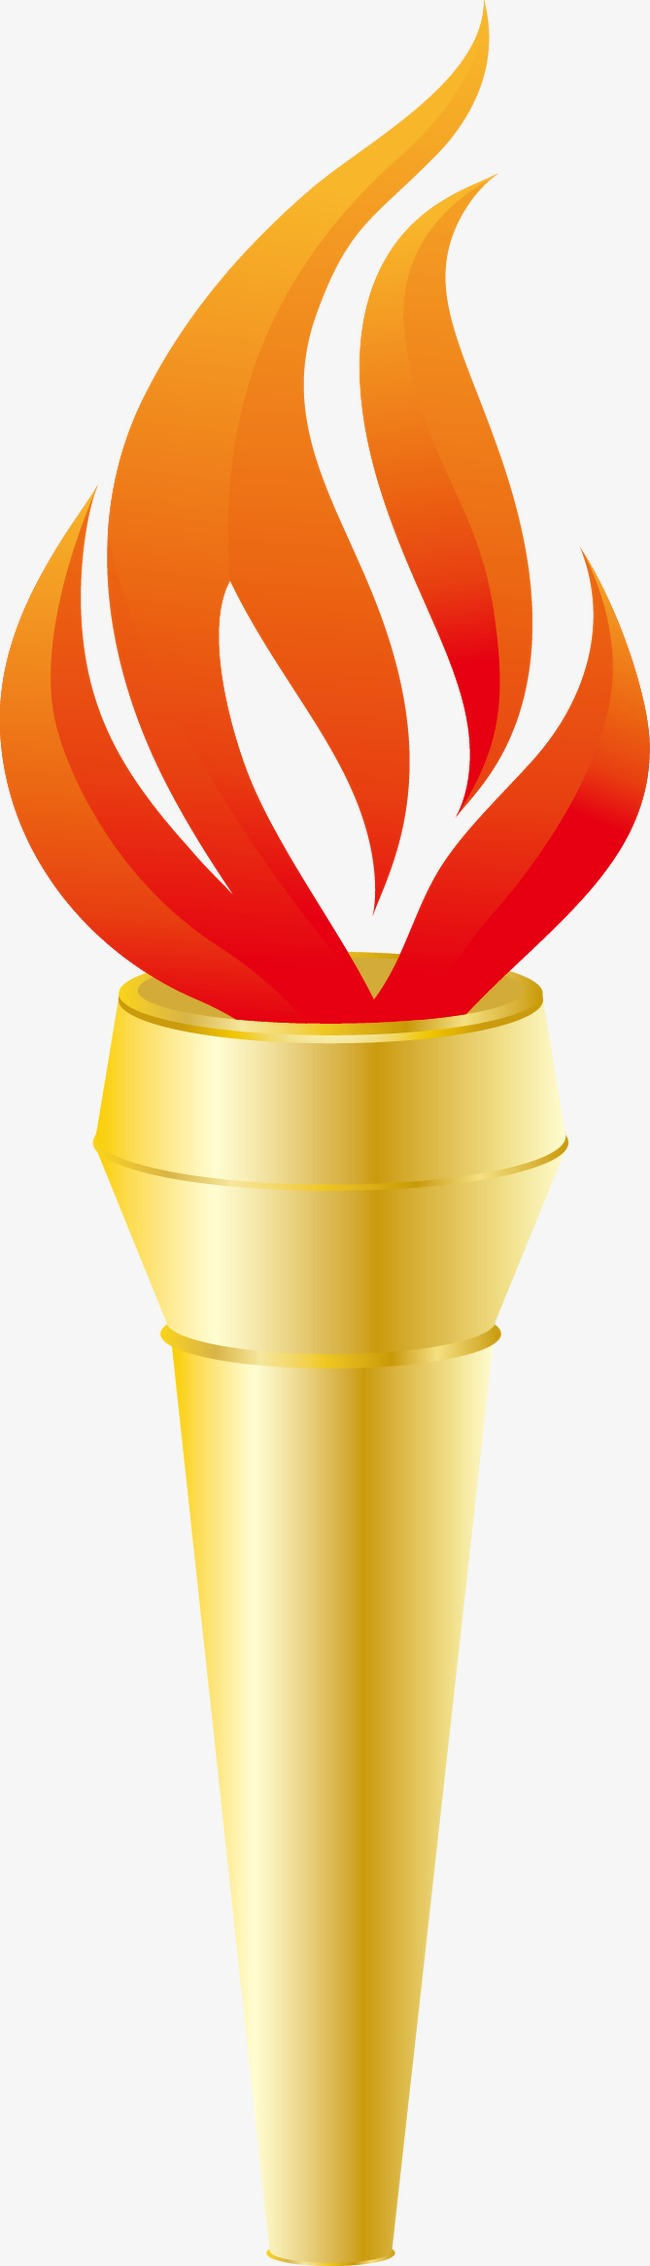 olympic torch clipart at getdrawings com free for personal use rh getdrawings com  olympic torch clip art free